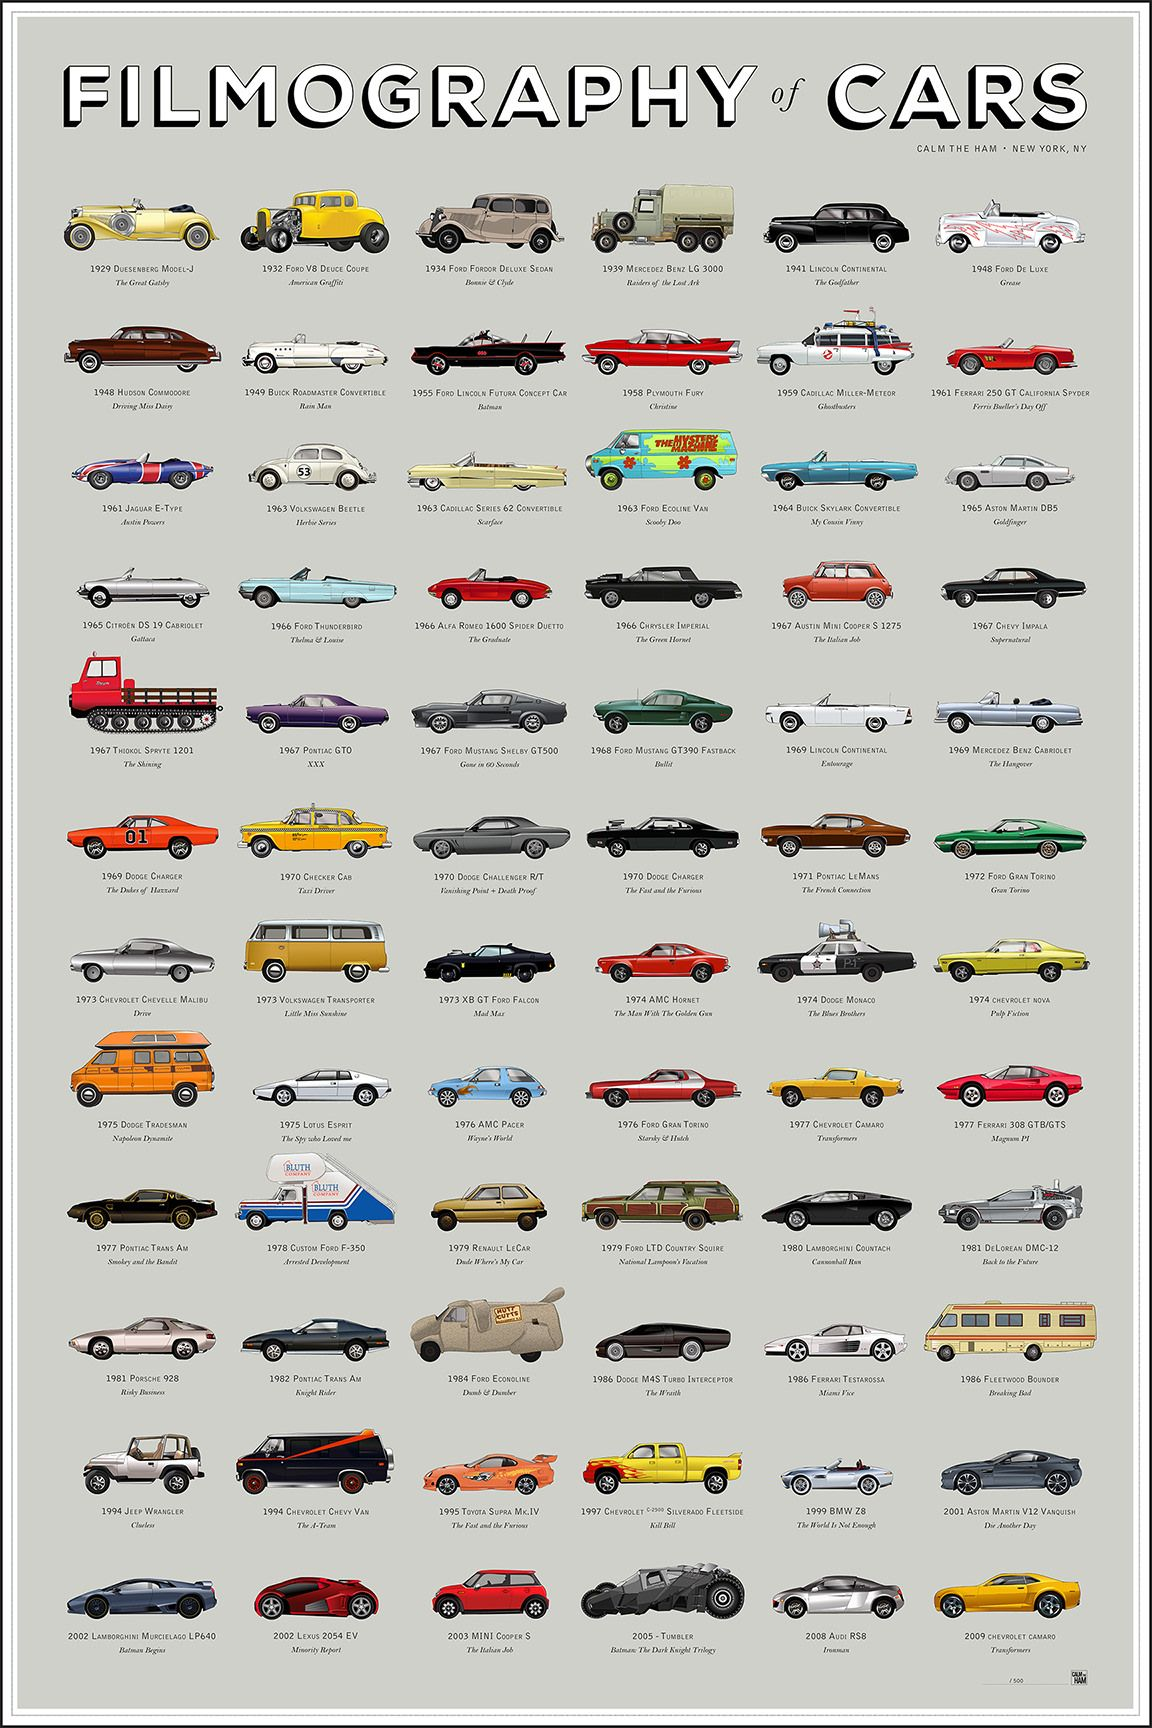 Test Your Pop Culture Car Knowledge With The Filmography Of Cars - Famous movie cars beautifully illustrated